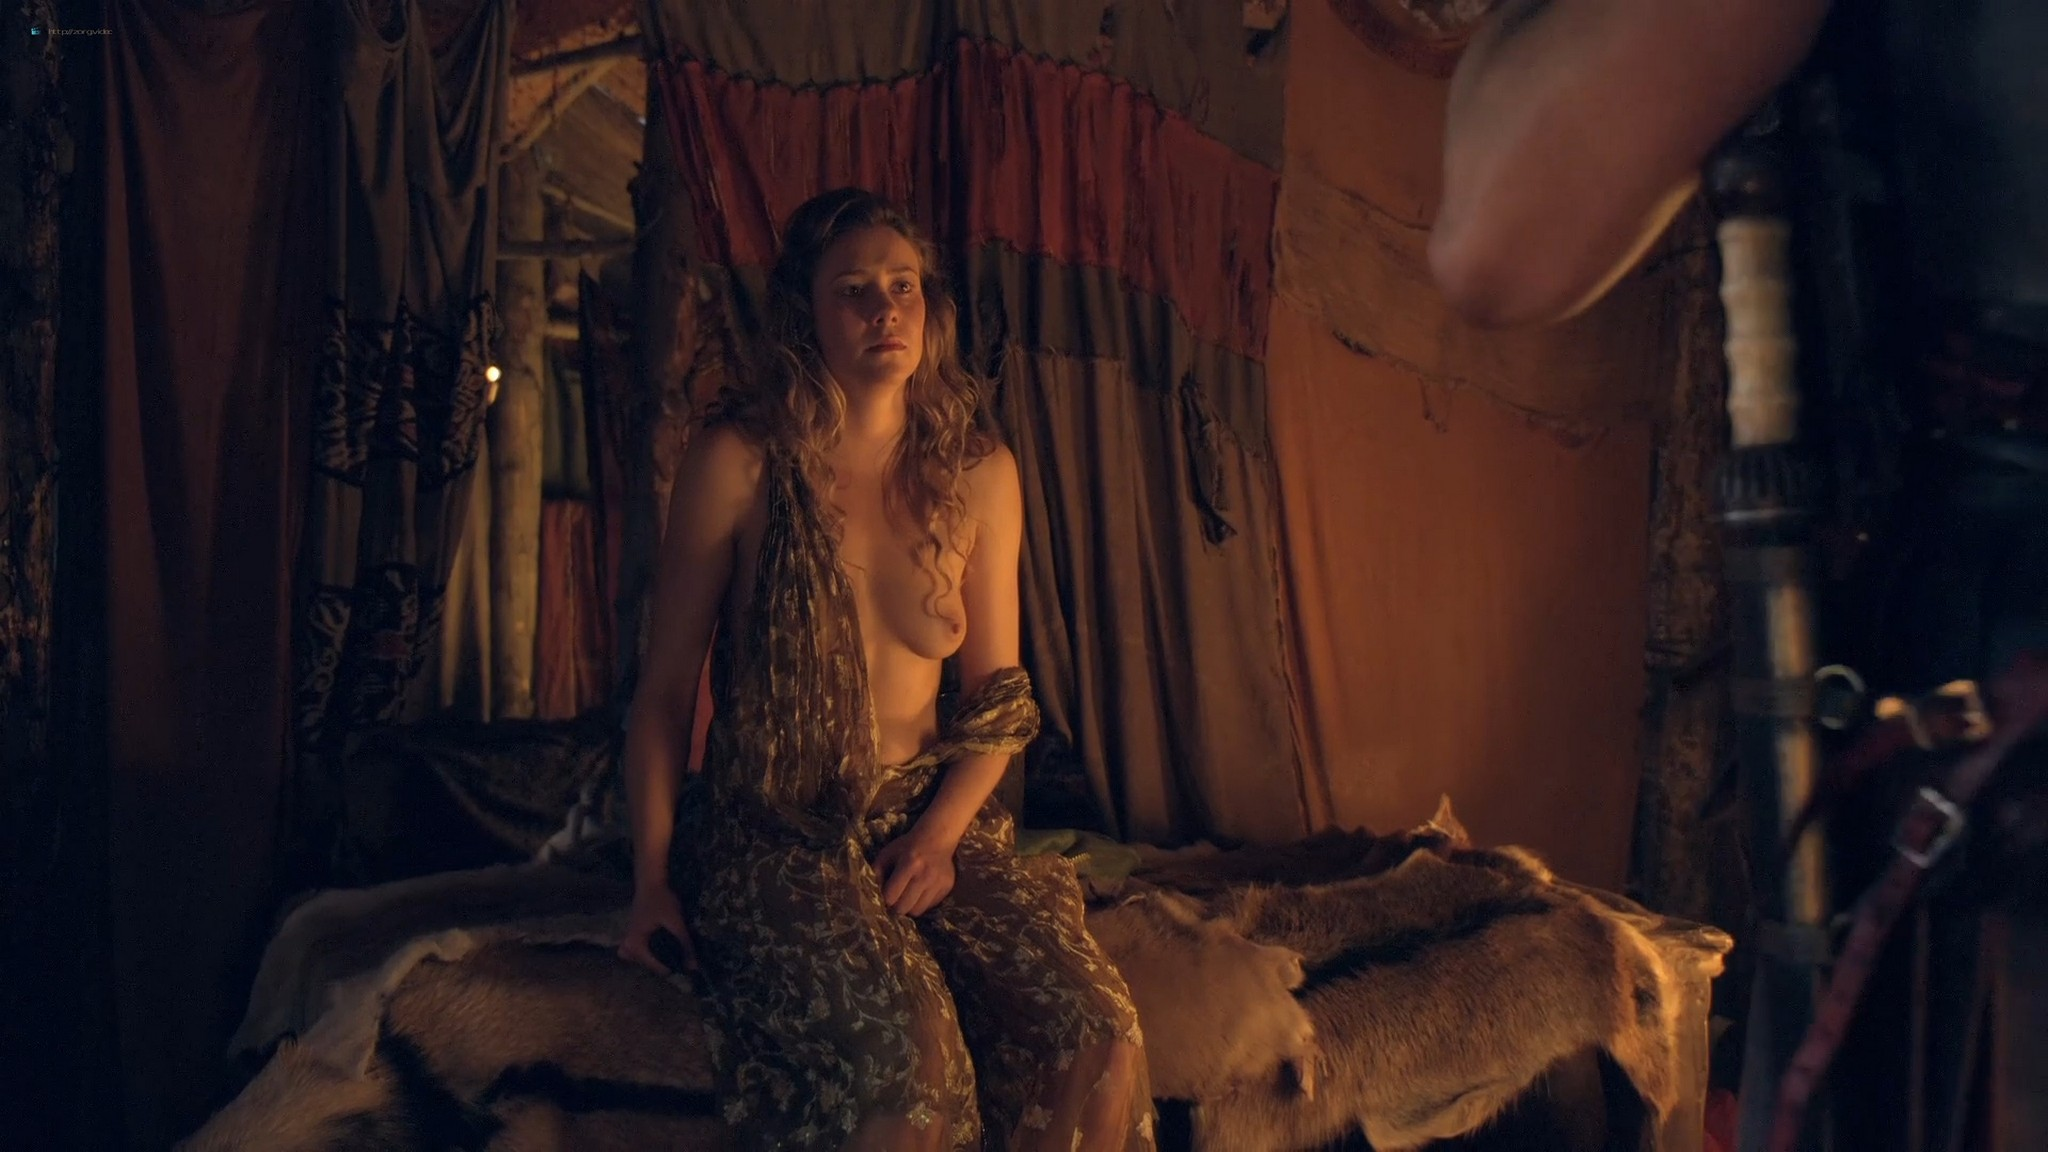 T Ann Robson nude full frontal Gwendoline Taylor nude too Spartacus 2013 s3e9 10 1080p BluRay 002